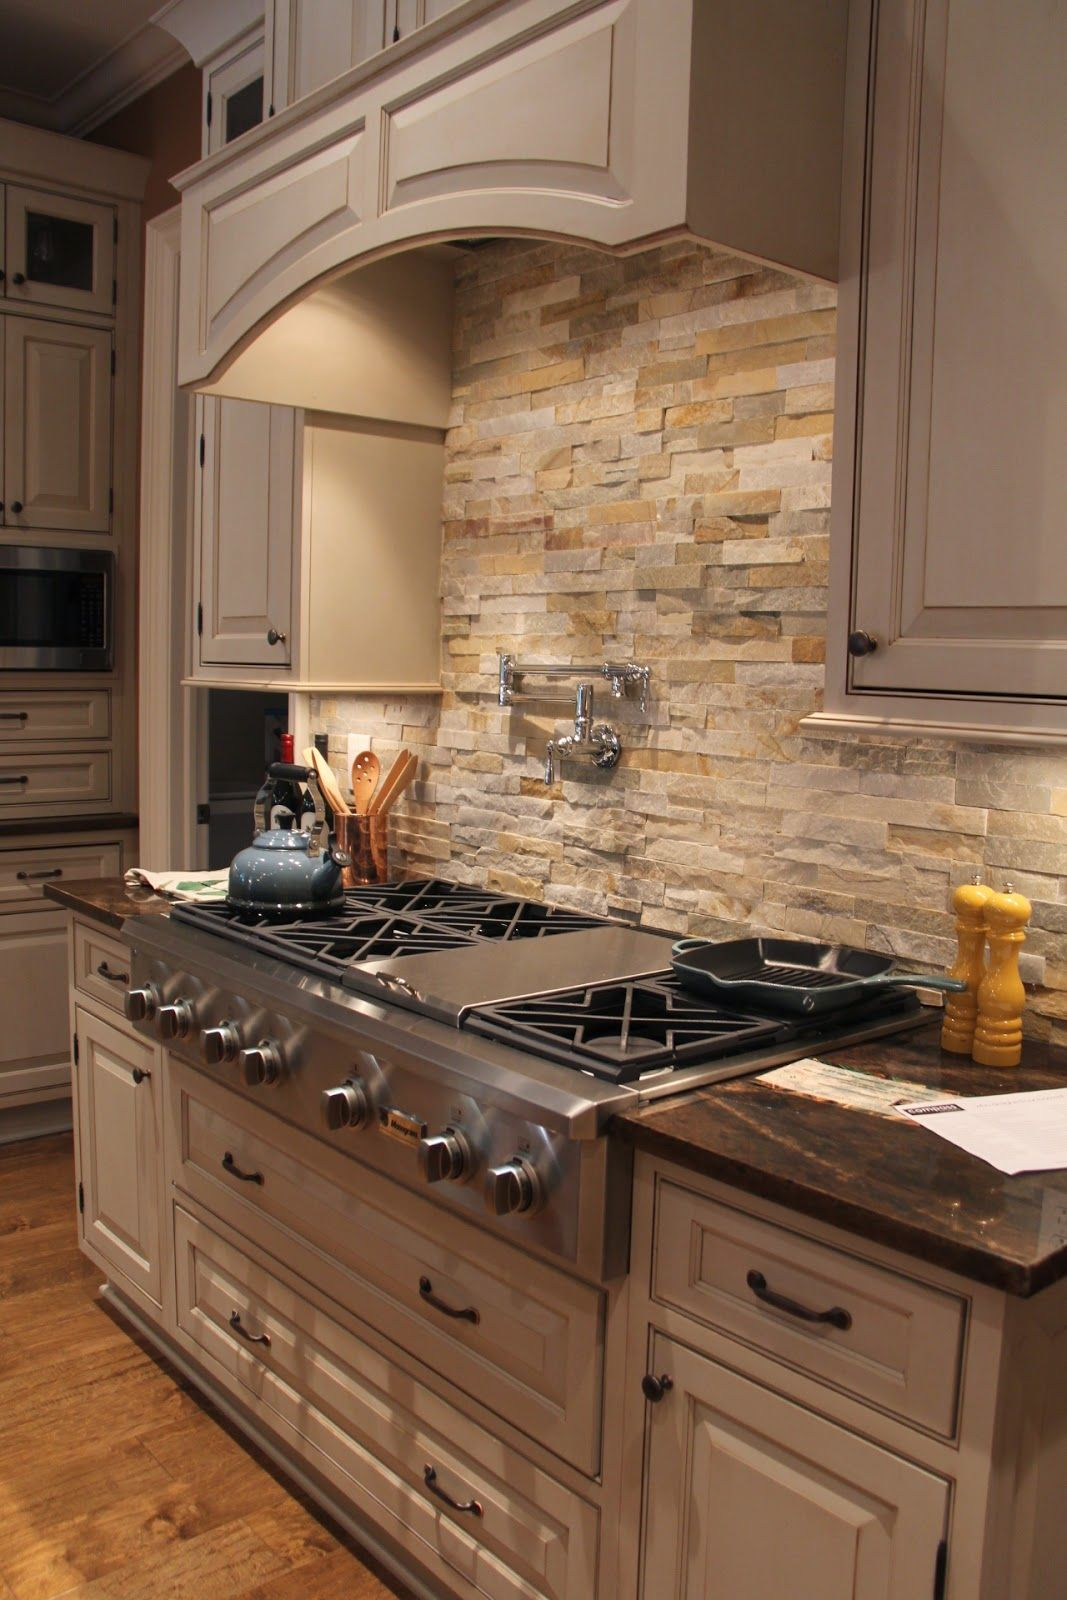 Great Backsplash Ideas Here Are Some Of My Favorite Things From This Year 39s Bia